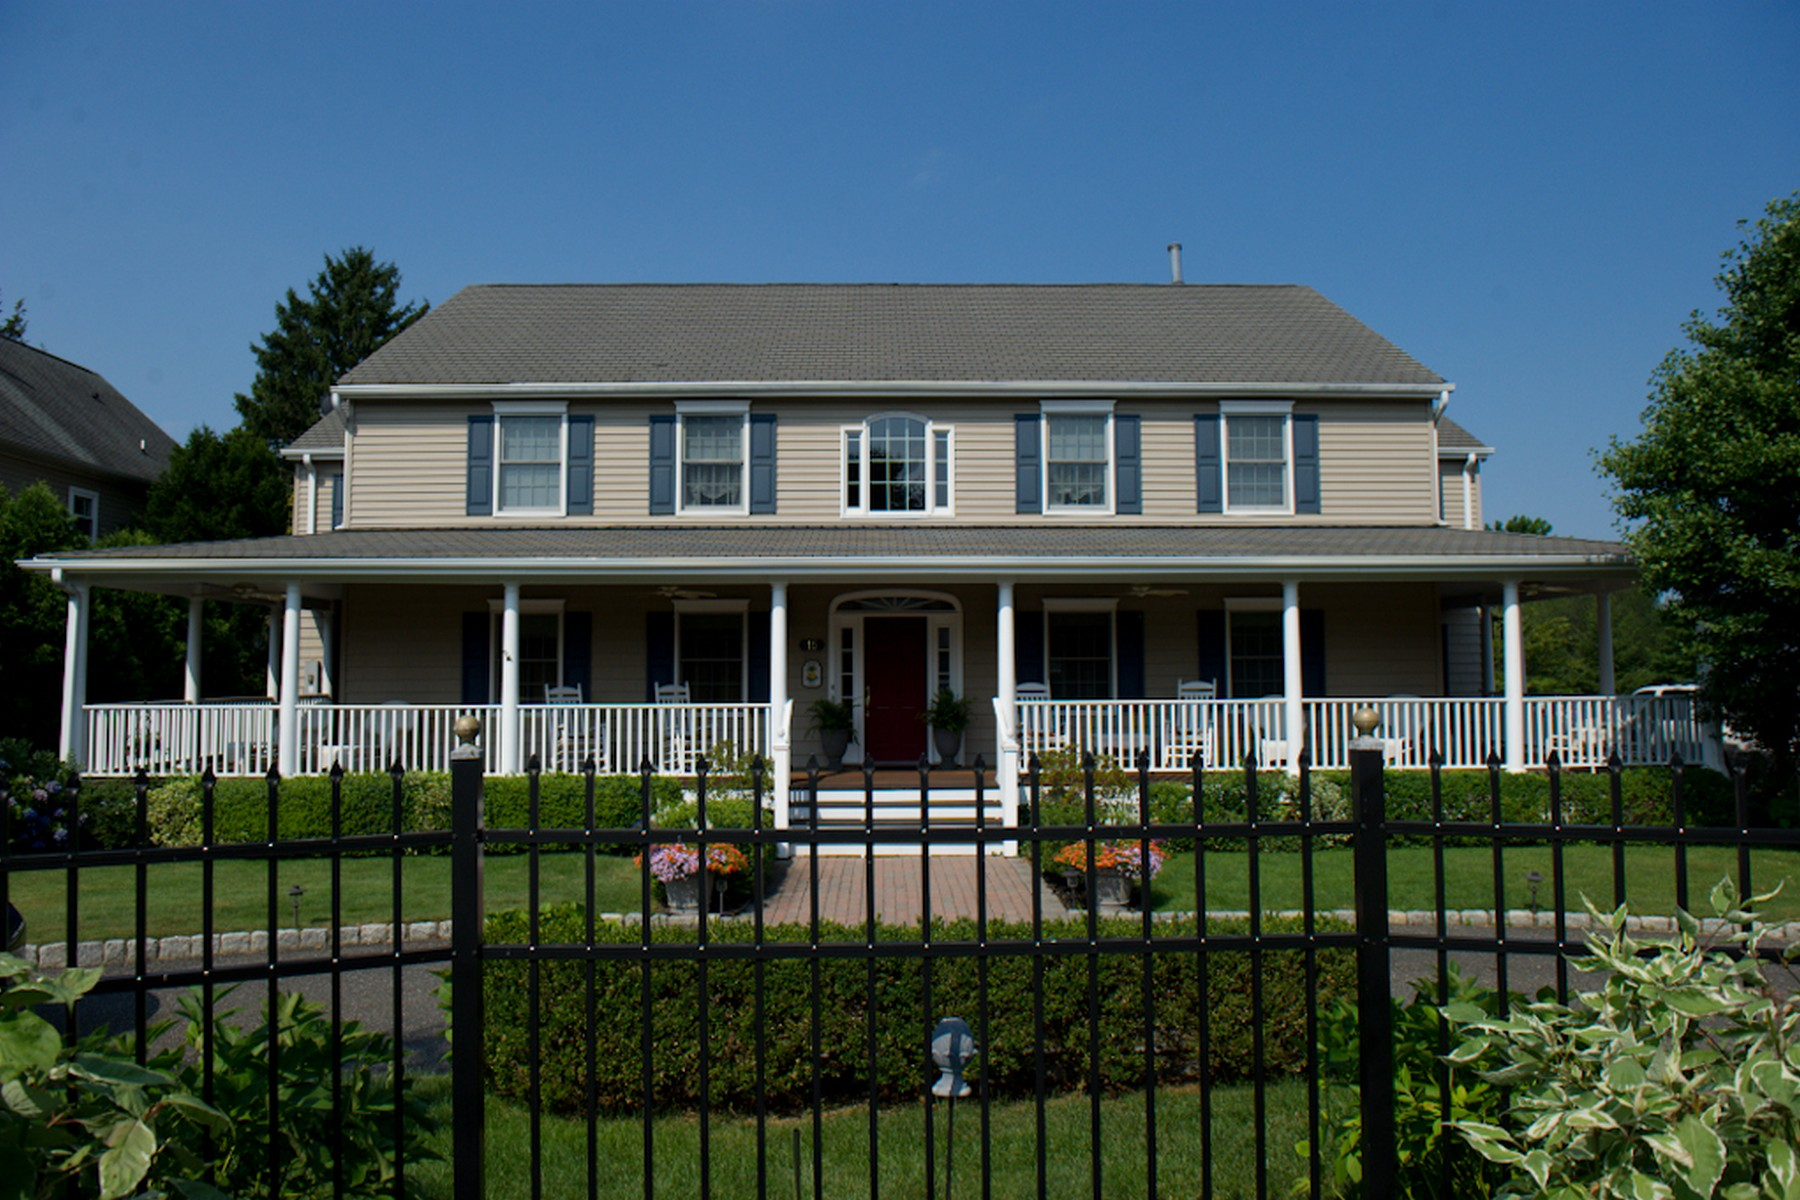 Single Family Home for Sale at 15 Munroe Ave. West Long Branch, New Jersey 07764 United States